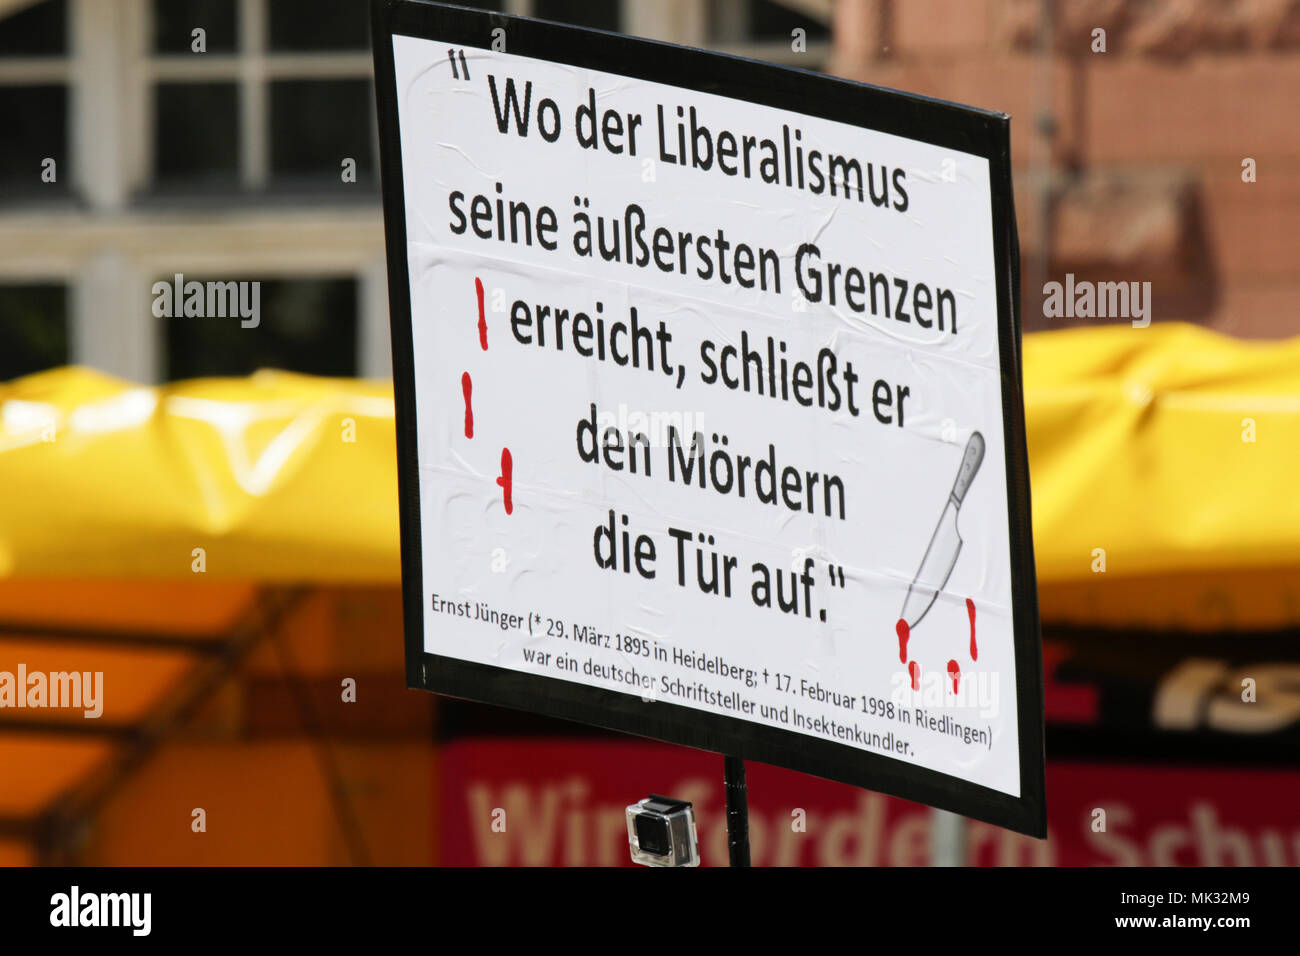 Germersheim, Germany. 6th May 2018. A right-wing protester holds up a sign that reads 'When liberalism reaches its final limits, it will open the door to murderers'. Around 100 from different right-wing organisations protested in the city of Germersheim against Angela Merkel and for the security of women and children, which they see at risk by refugees and foreigners. They also called for the introduction of mandatory age checks (DNA test) by underage refugees. Credit: Michael Debets/Alamy Live News - Stock Image